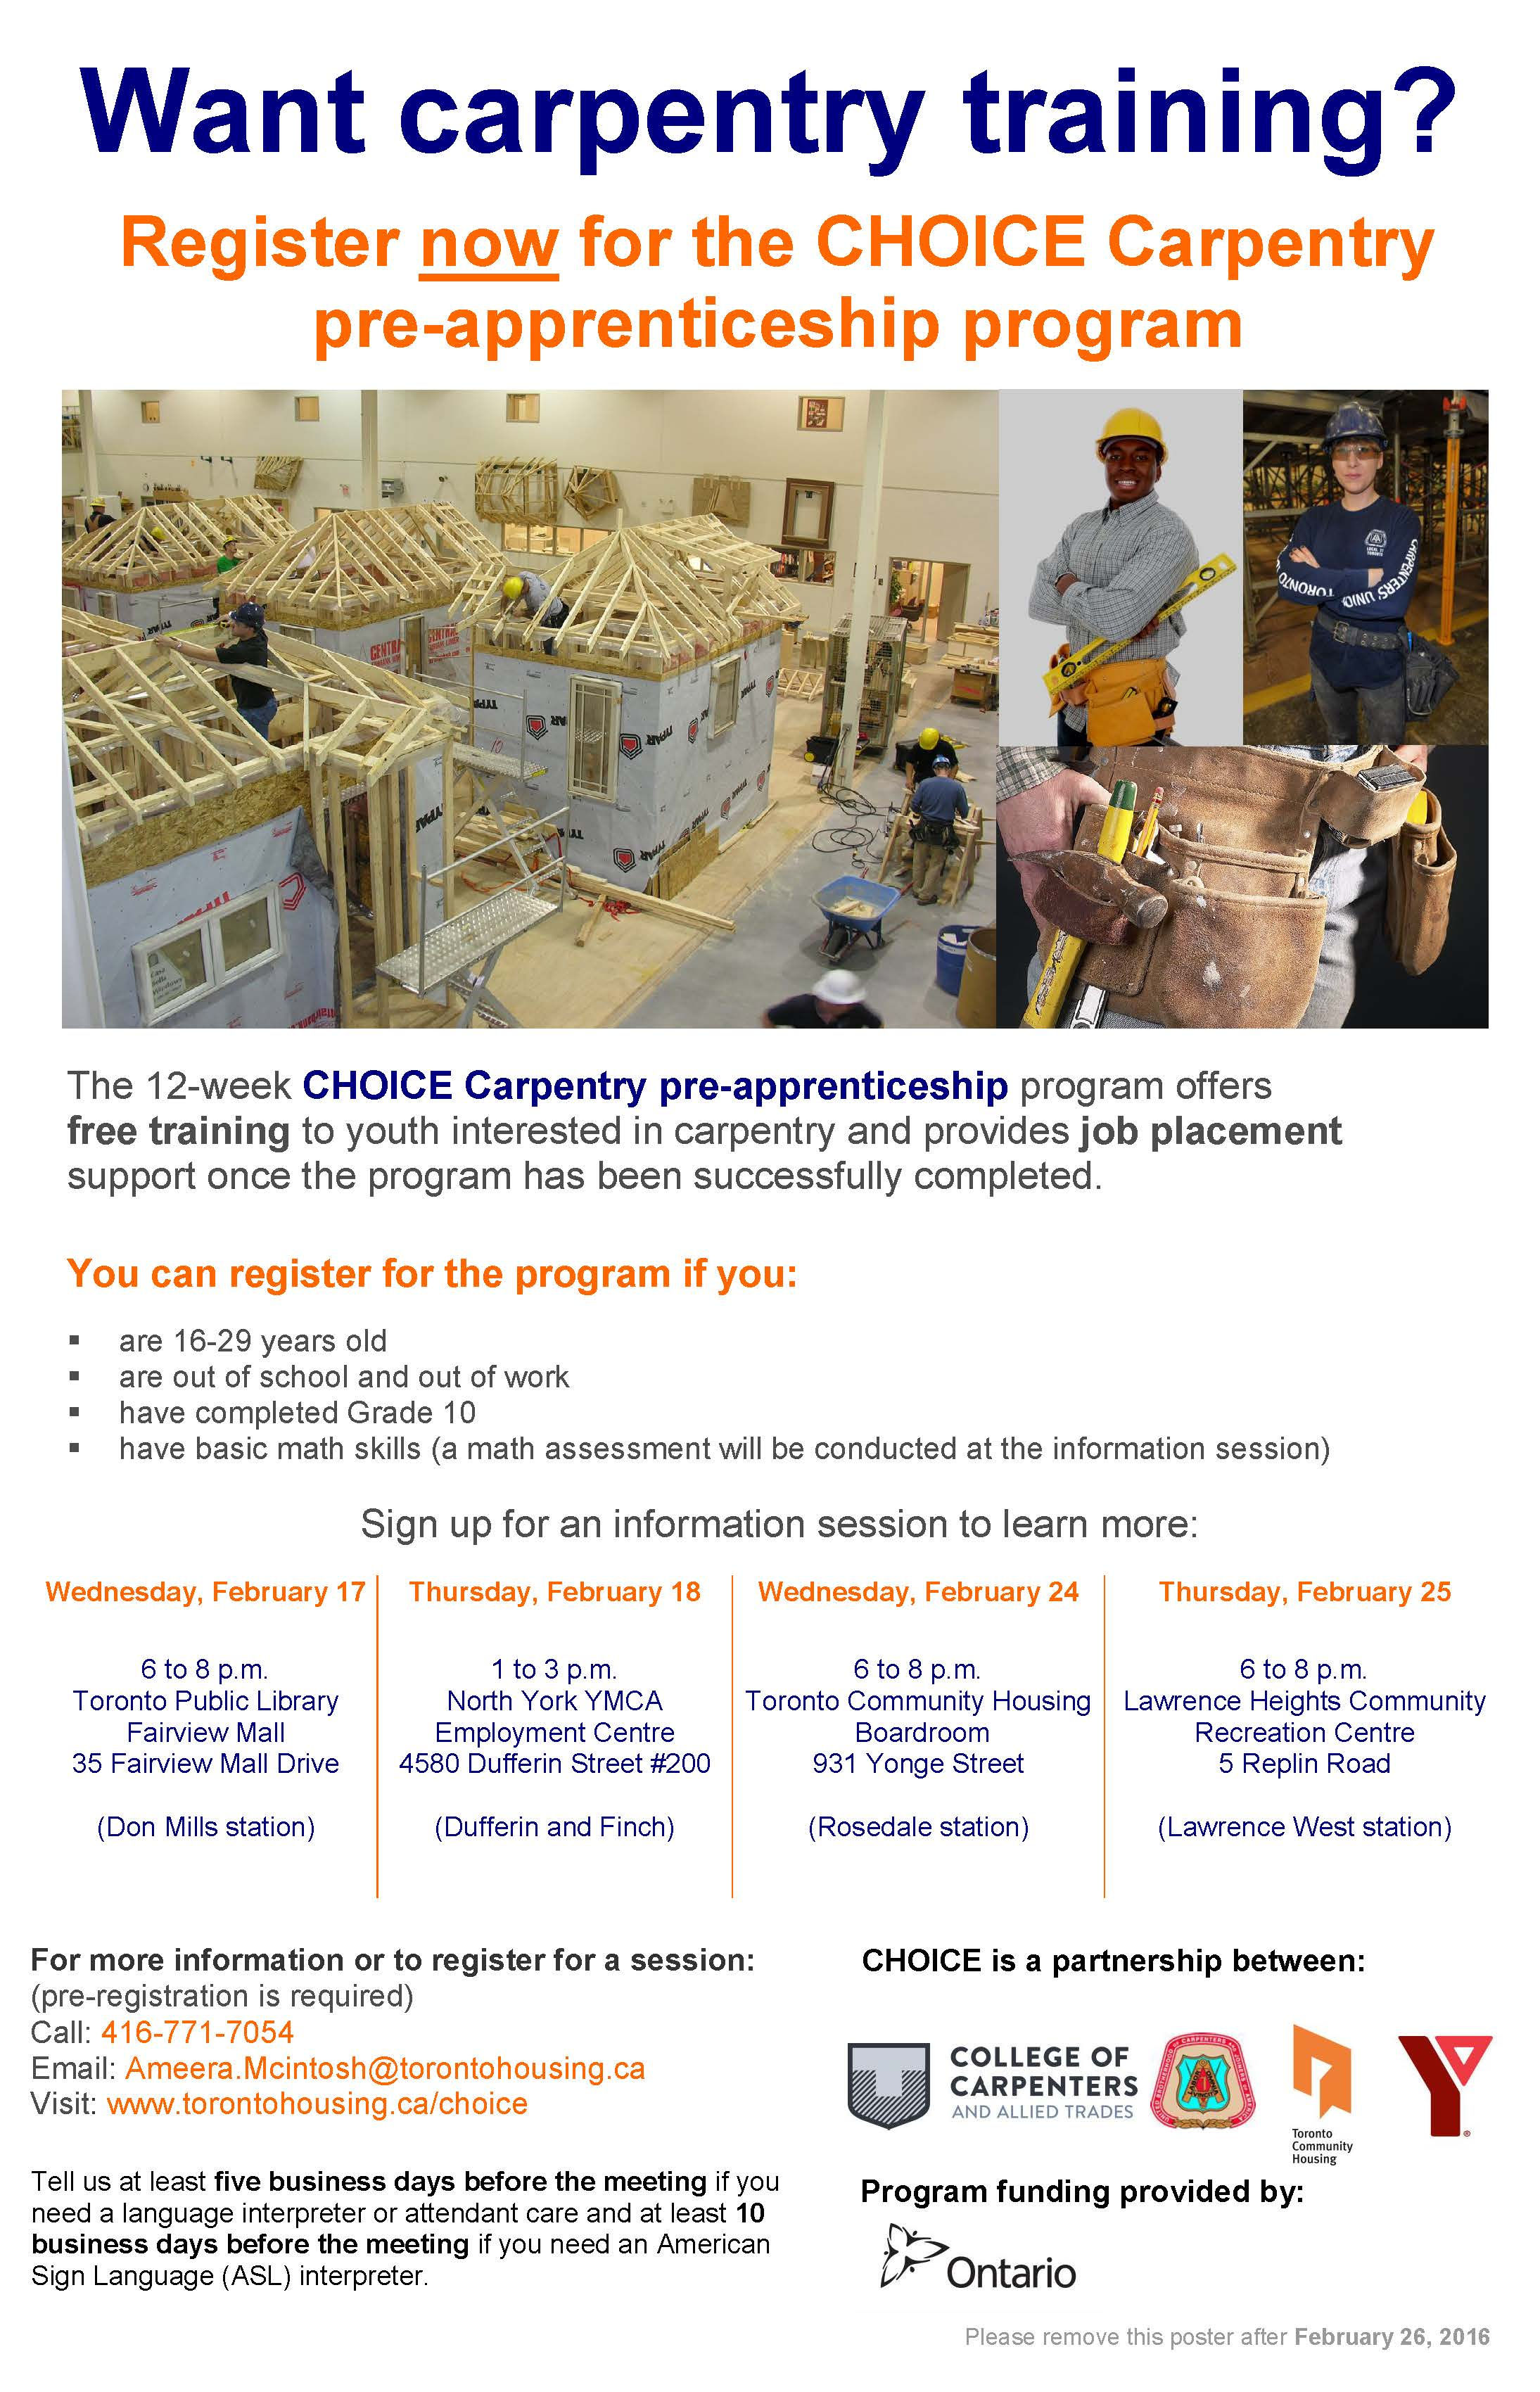 Information on carpentry training